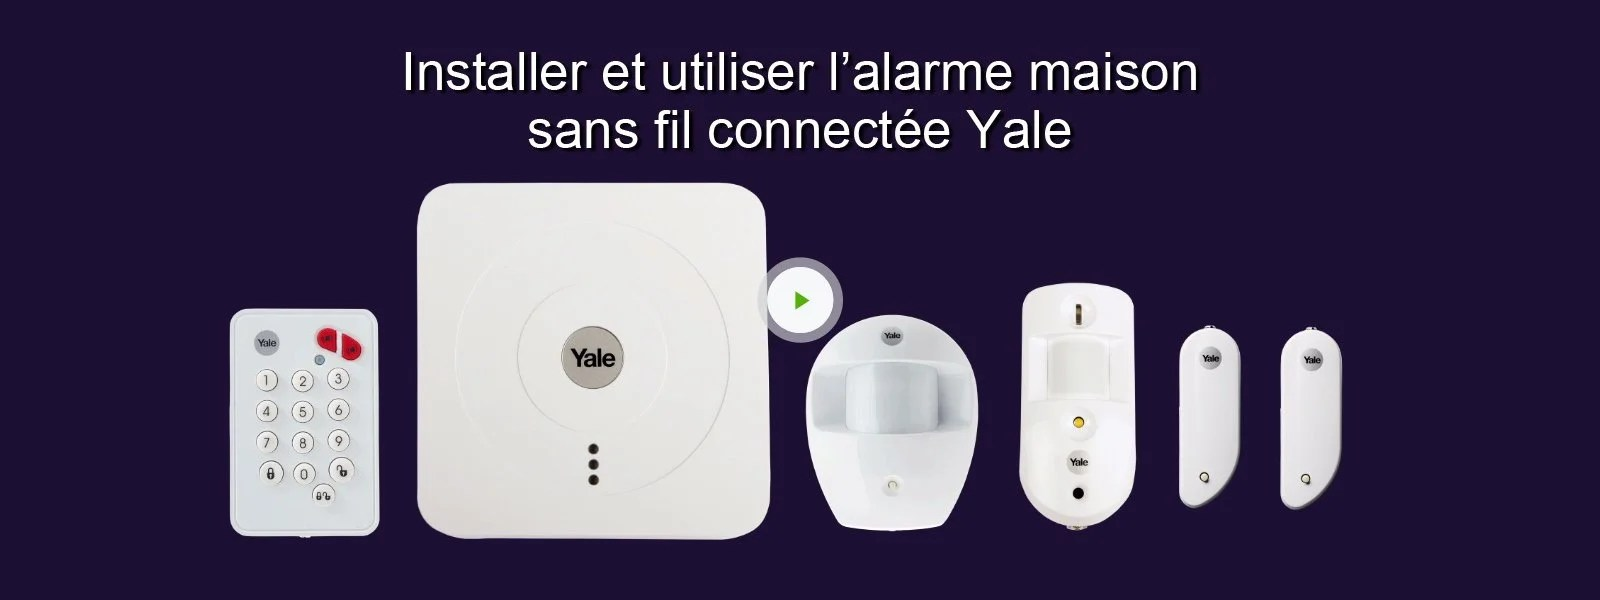 Alarme Tike Securite Forum Alarme Maison Sans Fil Connectée Pack Dissuasion Sr 3200i Yale